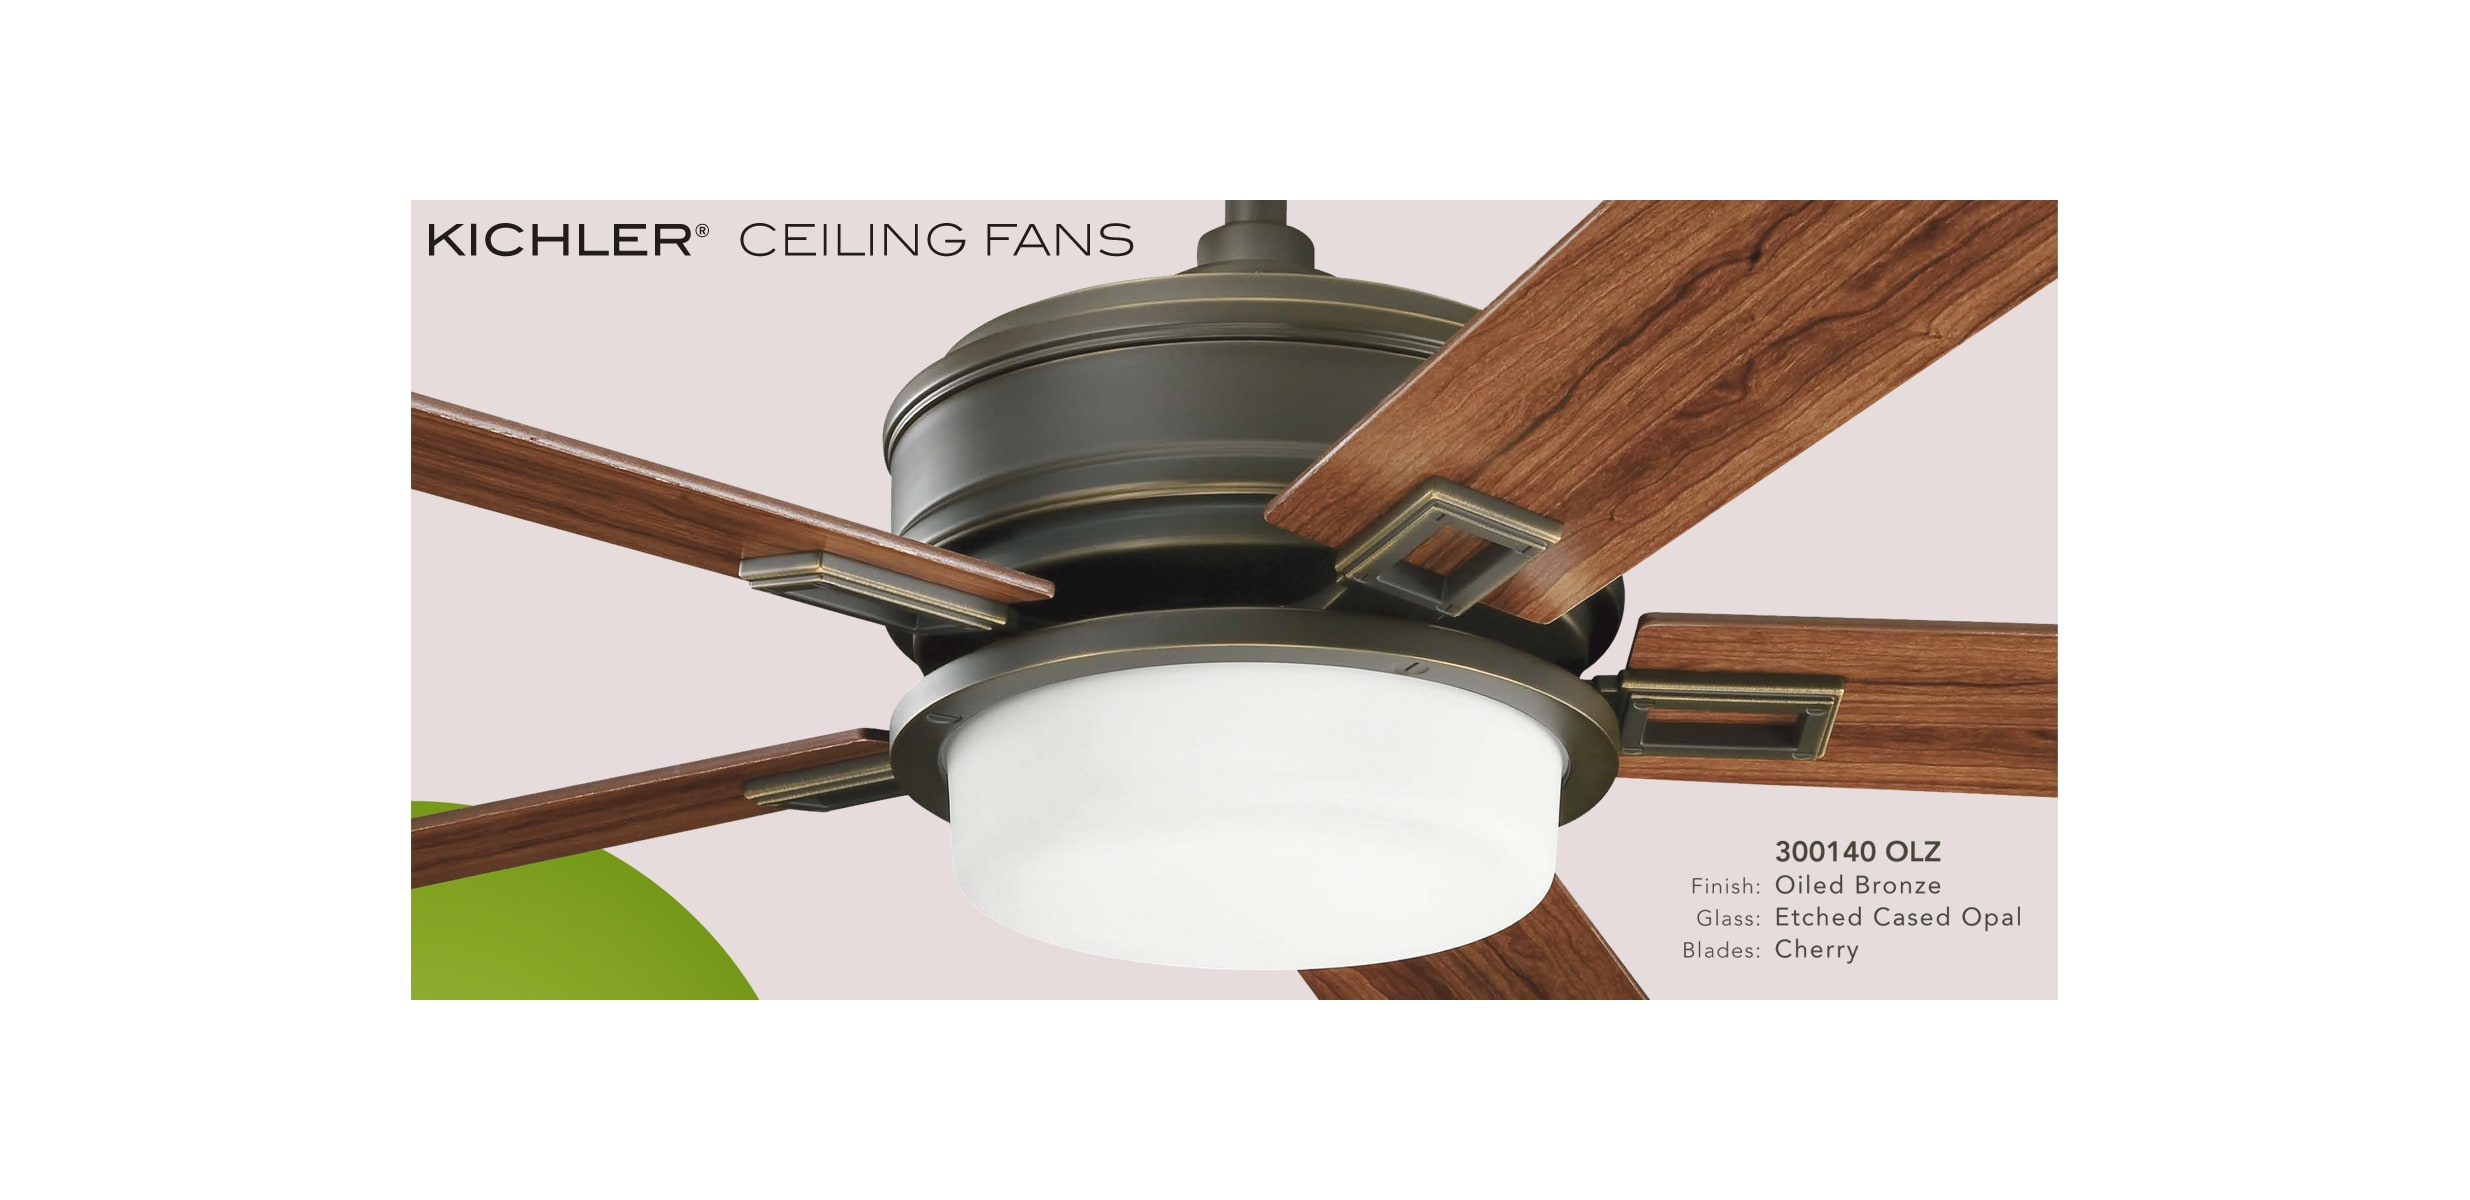 Kichler Ceiling Fan Wiring Diagram 300140ap Antique Pewter 52 Indoor With 5 Blades Includes Cool Touch Remote Light Kit And 4 Downrod